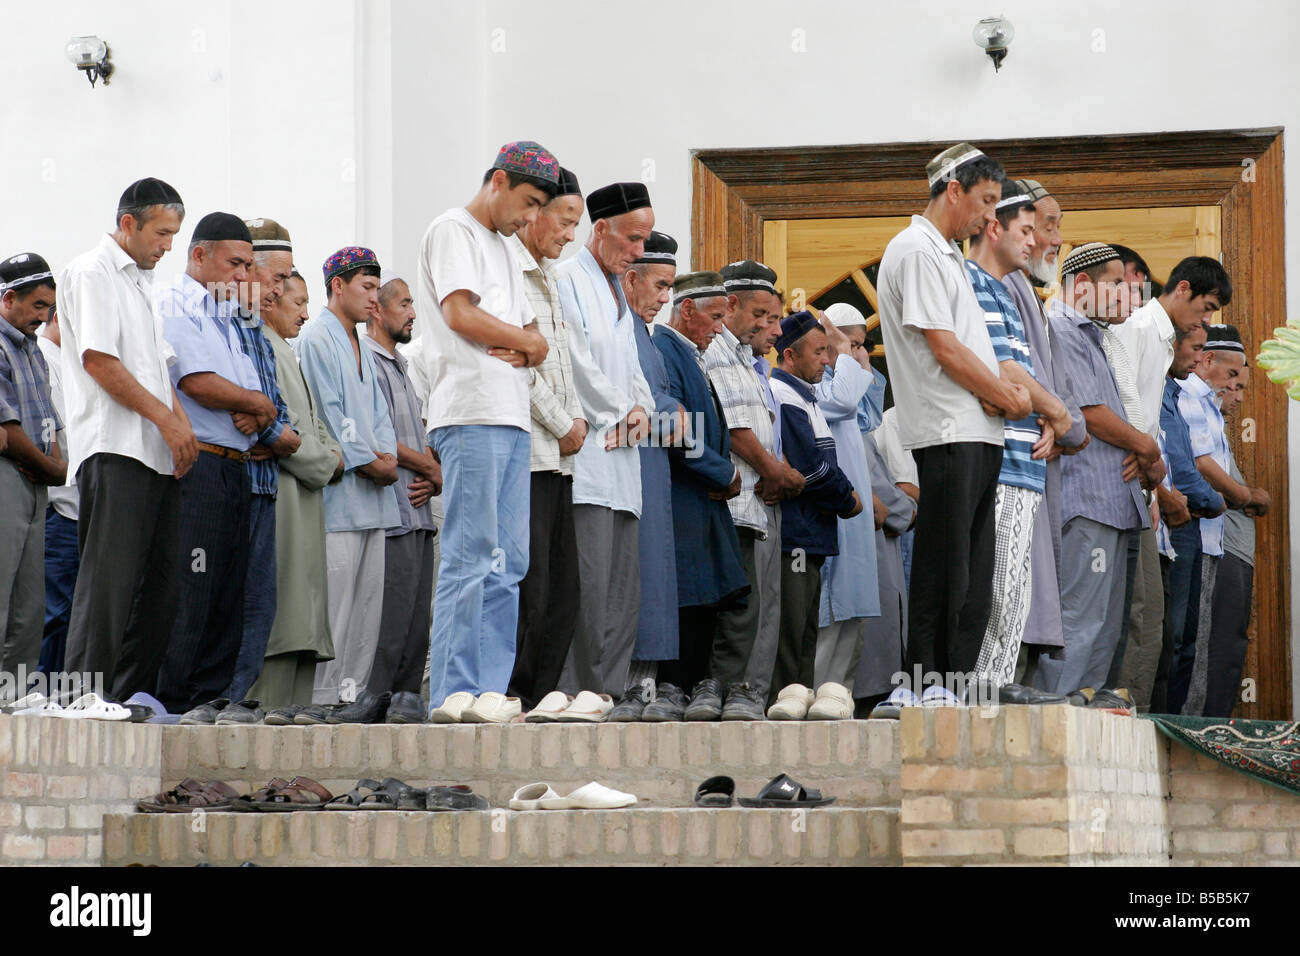 Muslim praying in the mosque, Uzbekistan - Stock Image